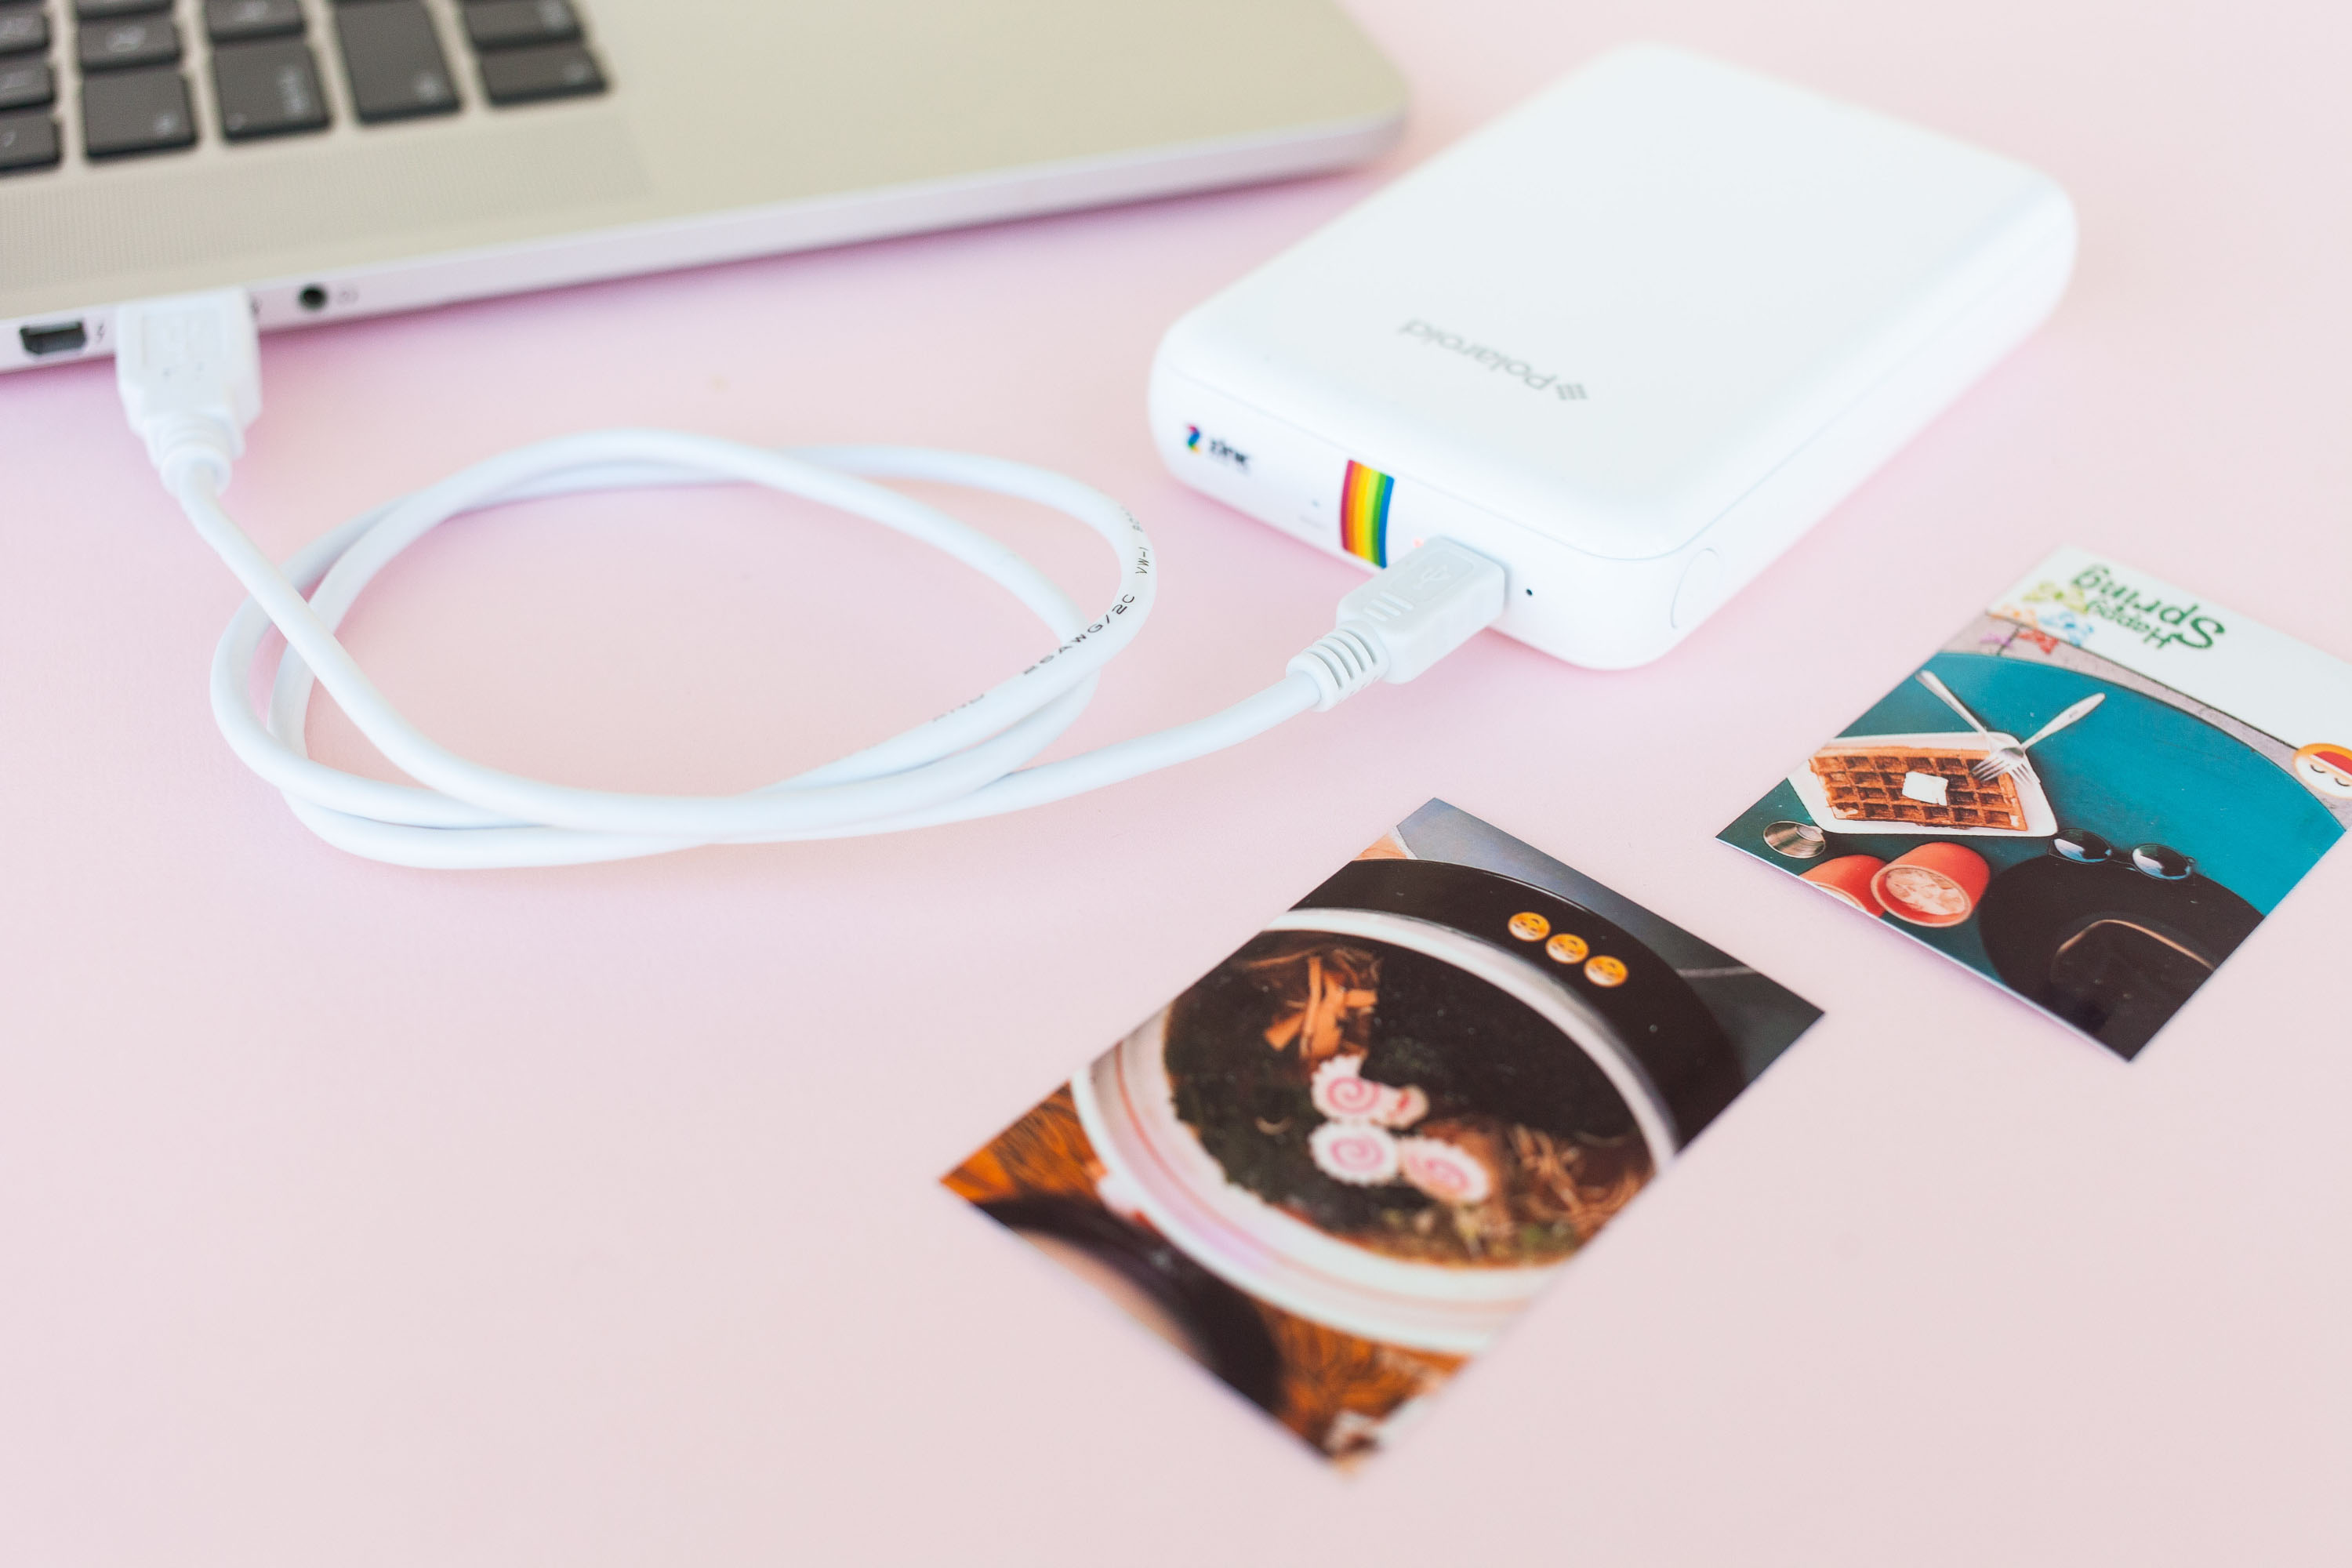 polaroid-zip-instant-printer-dede.0000001429321089